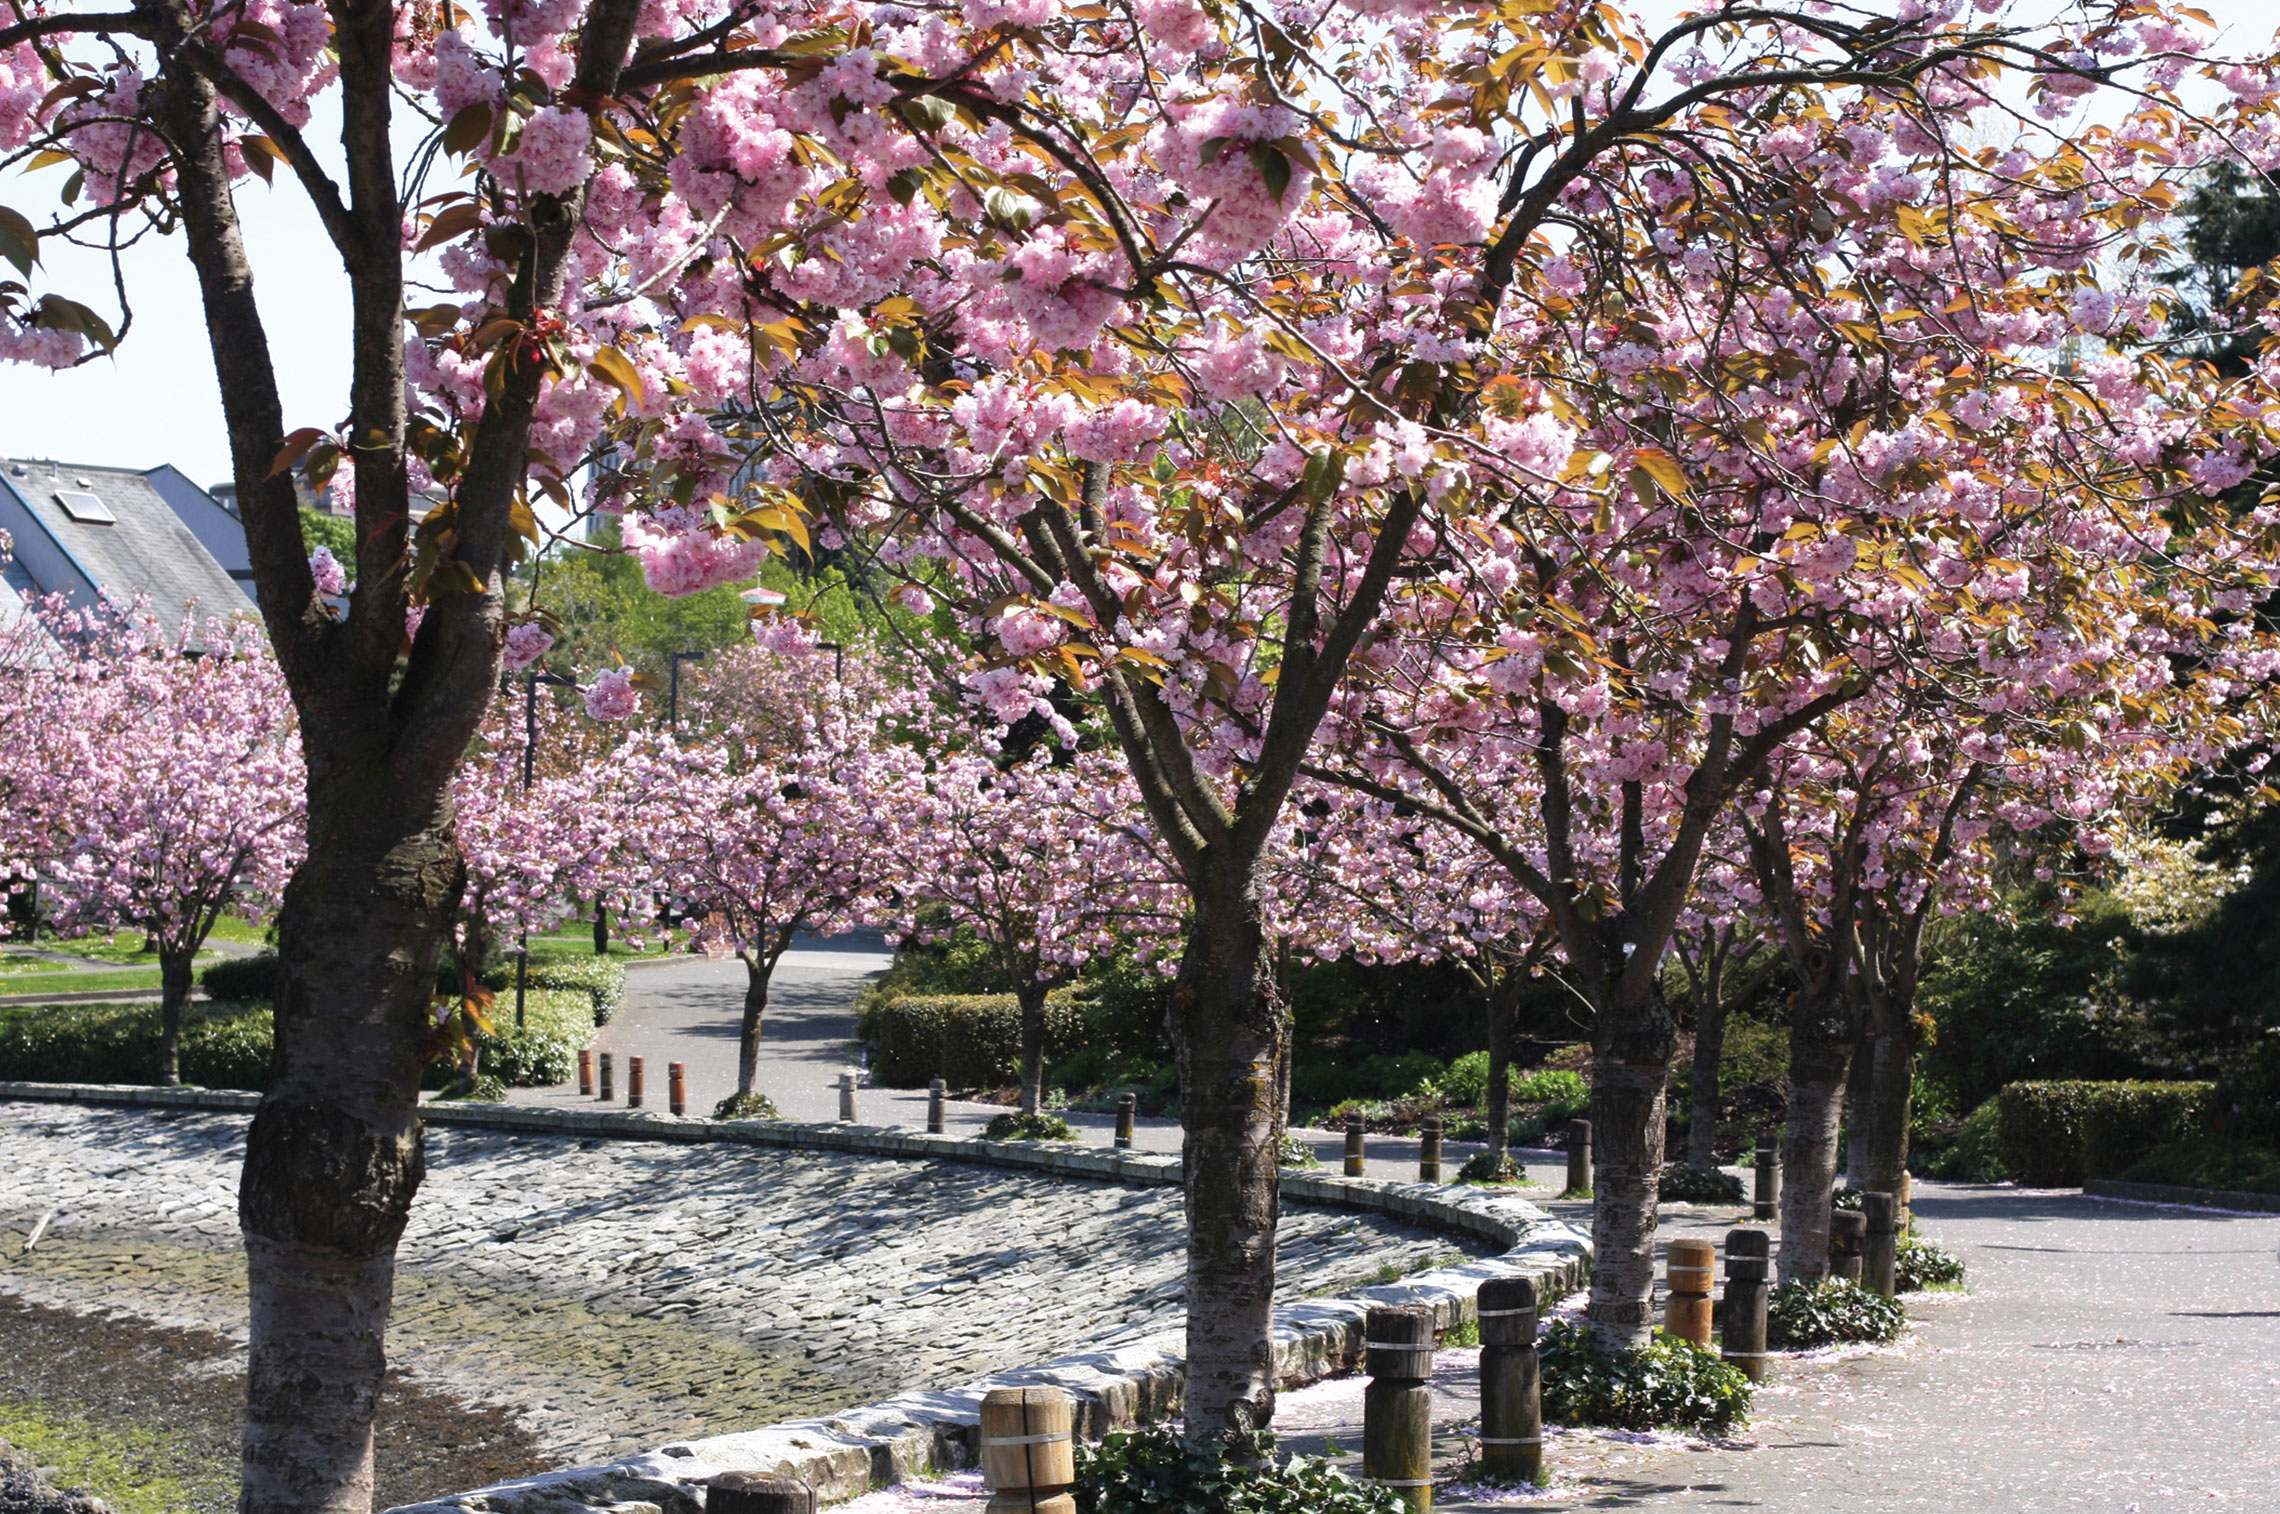 It's Not Too Late to Take in the 2018 Vancouver Cherry Blossom Festival